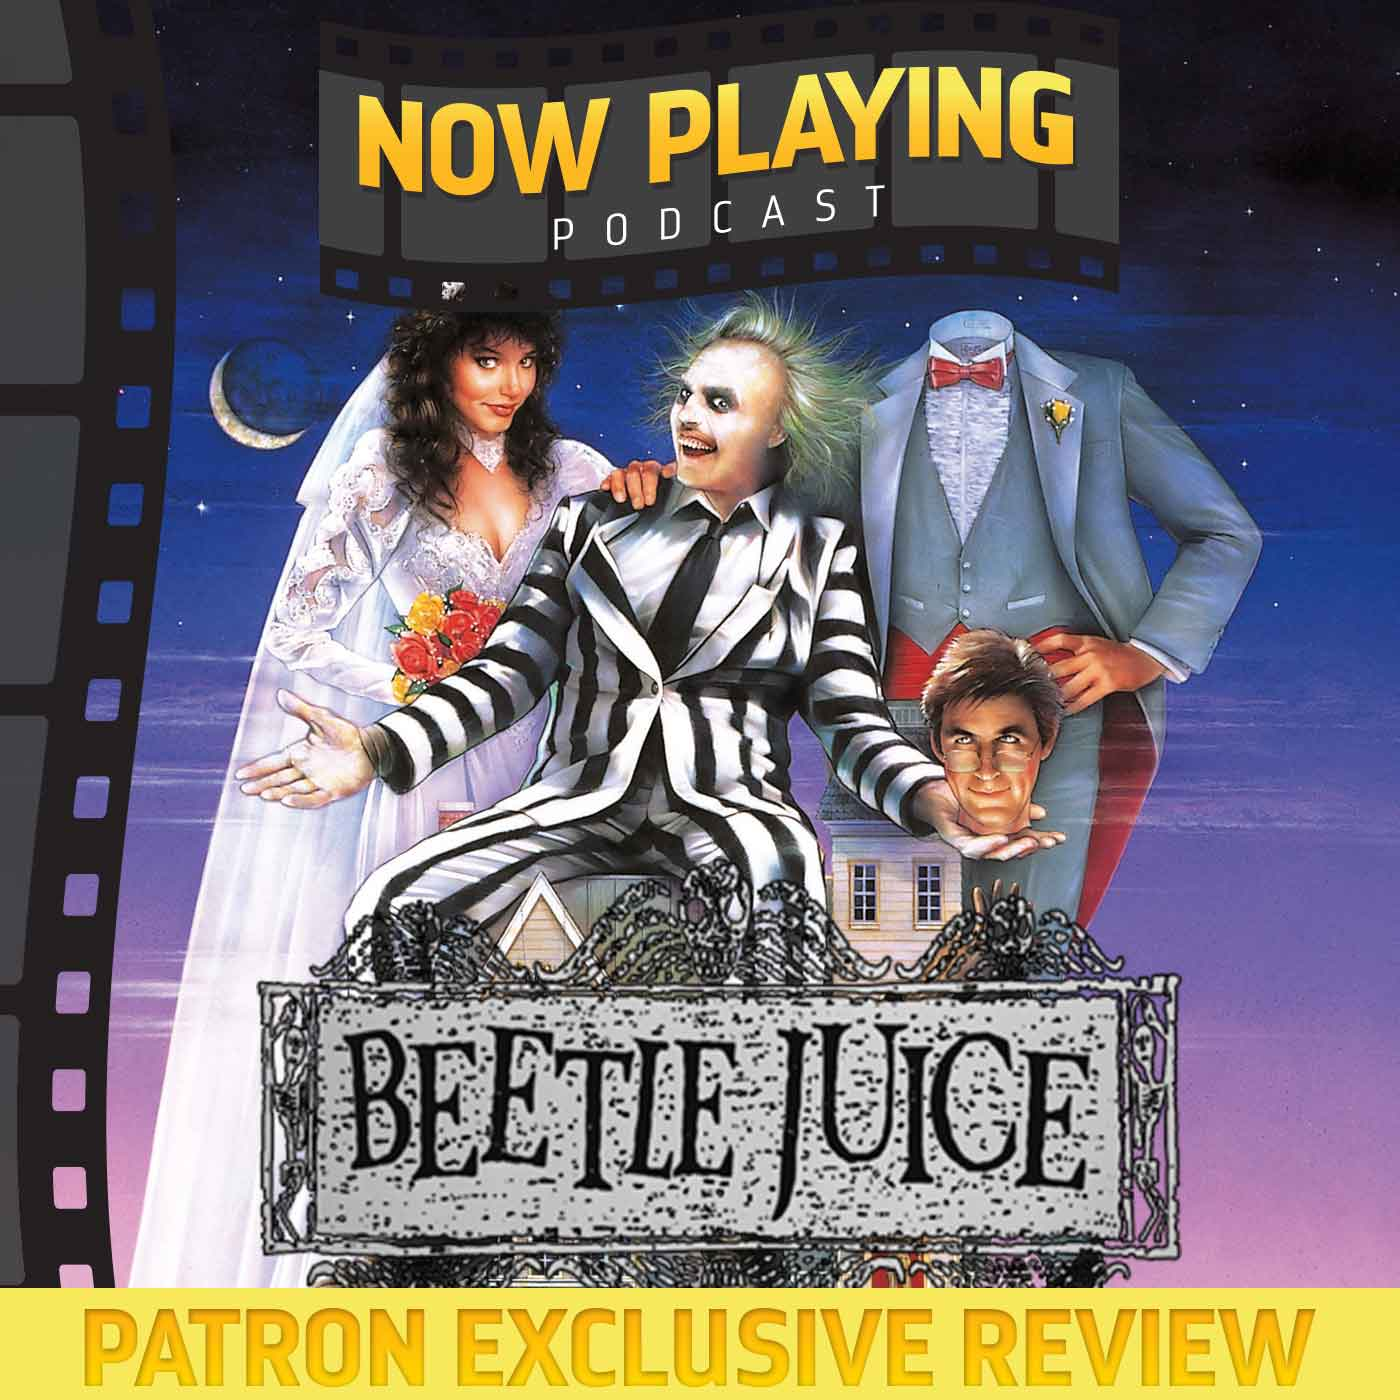 Beetlejuice - Patron Exclusive Review